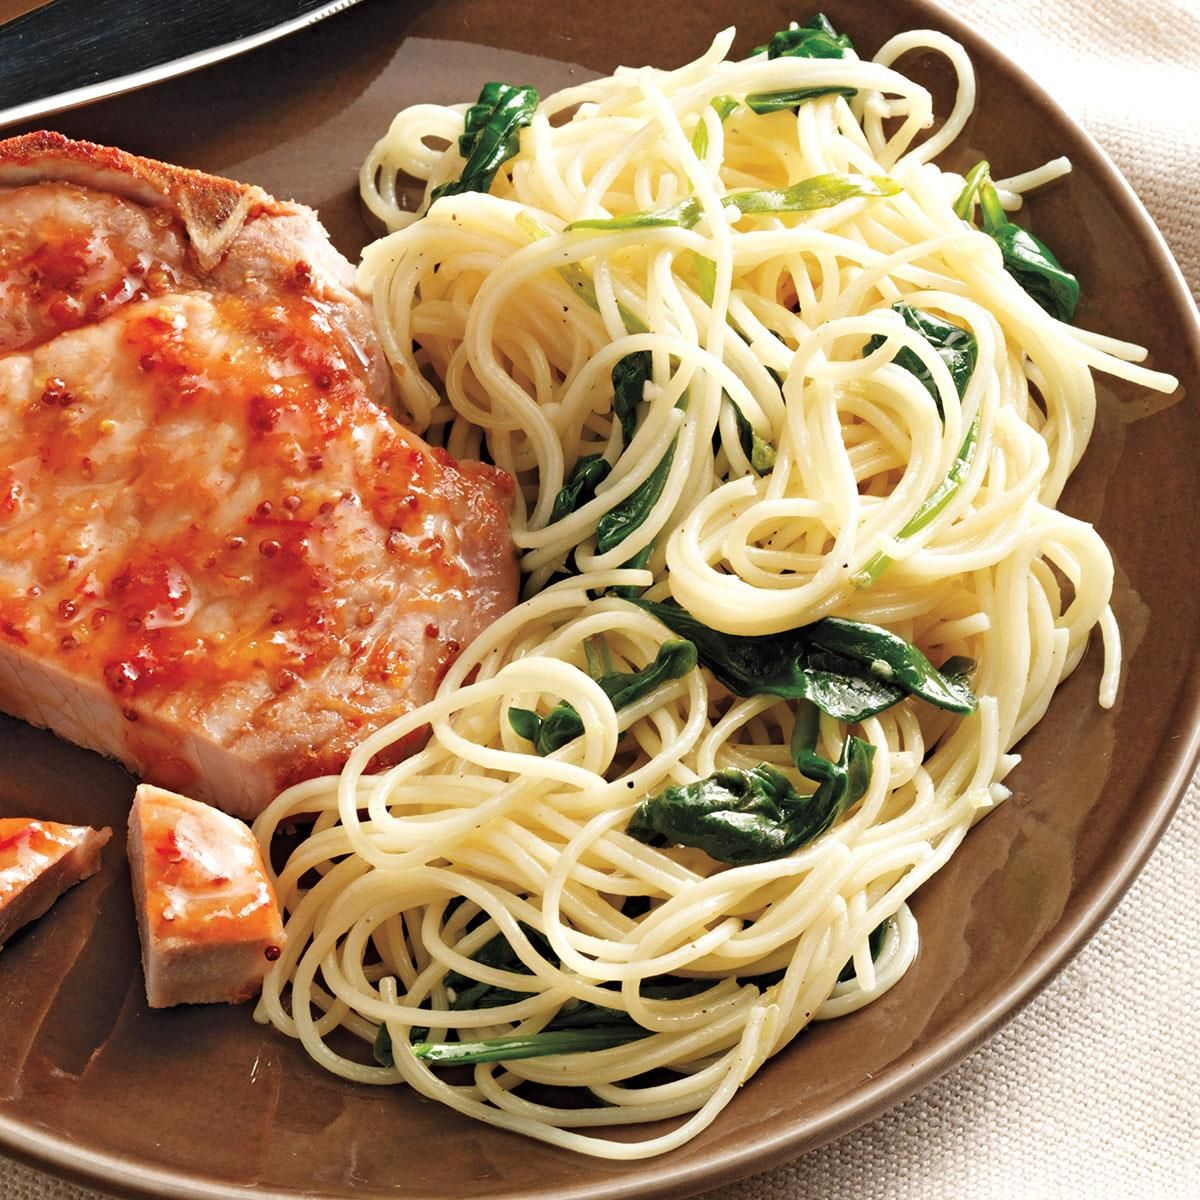 Chicken Dishes Under 200 Calories: Lemon Pasta With Spinach